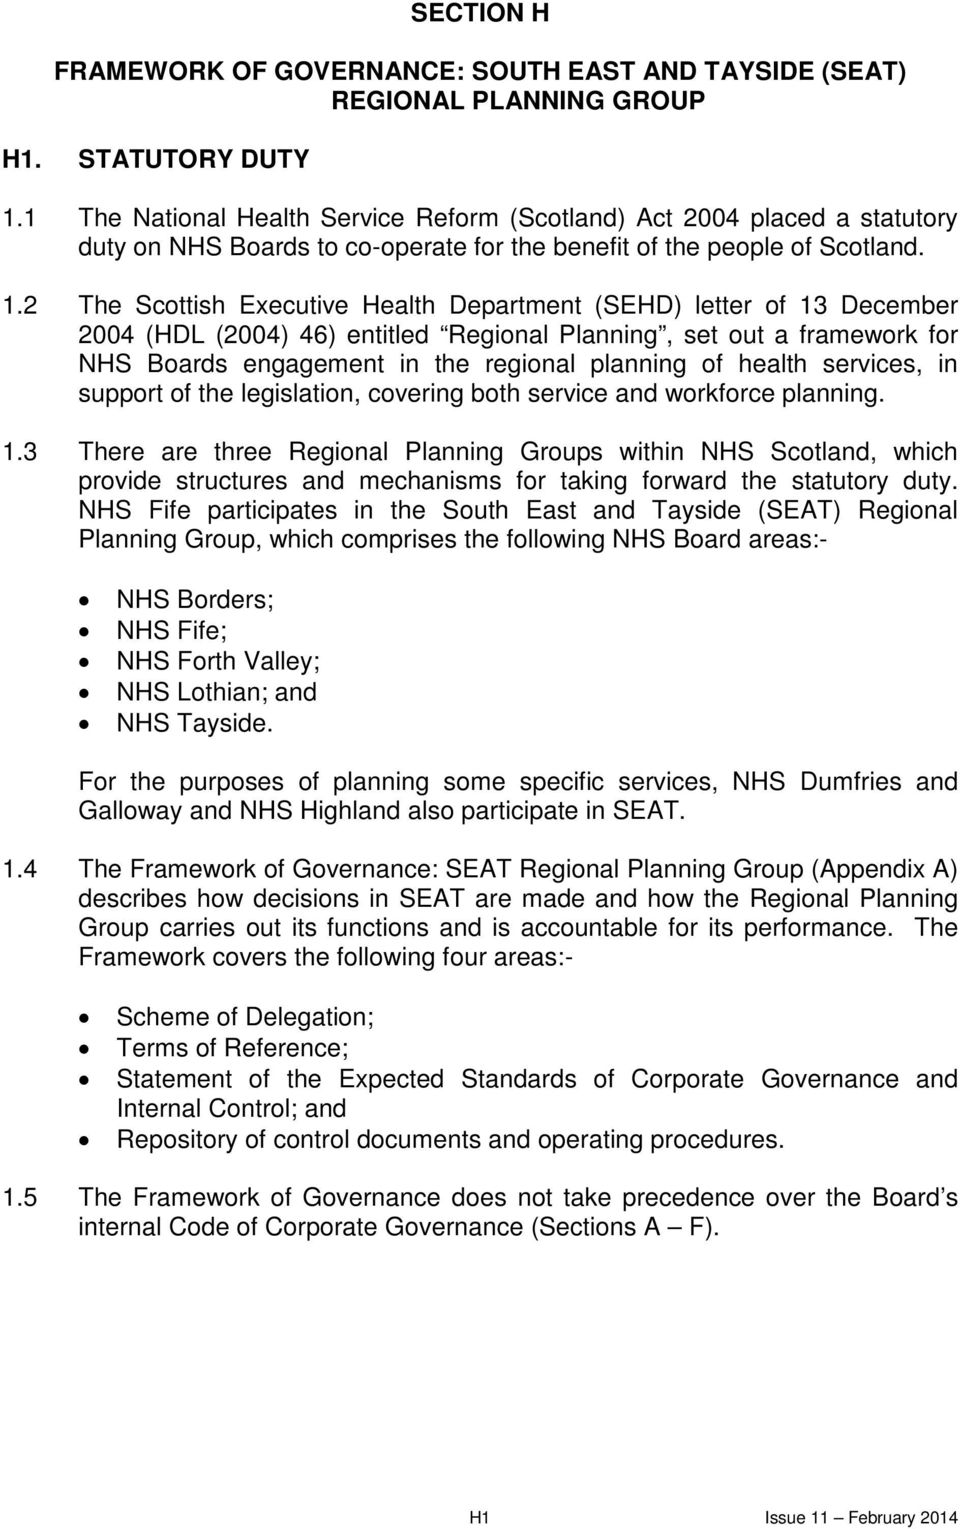 2 The Scottish Executive Health Department (SEHD) letter of 13 December 2004 (HDL (2004) 46) entitled Regional Planning, set out a framework for NHS Boards engagement in the regional planning of